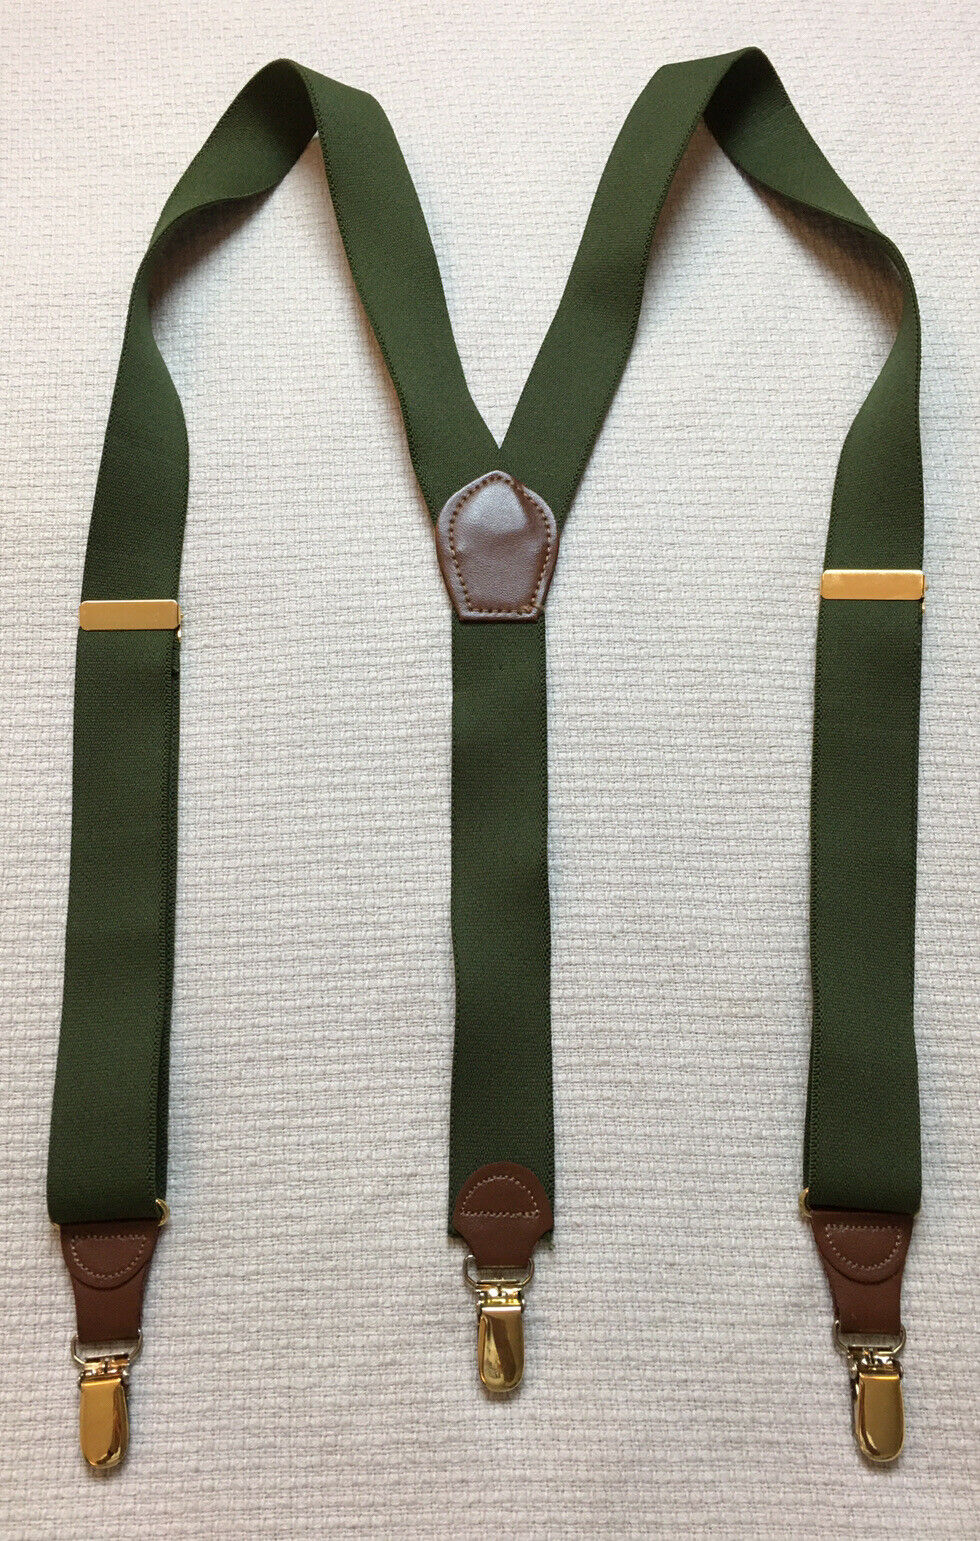 Pelican Braces Suspenders Green Elastic Brown Leather Brass Clip GUC FAST SHIP!